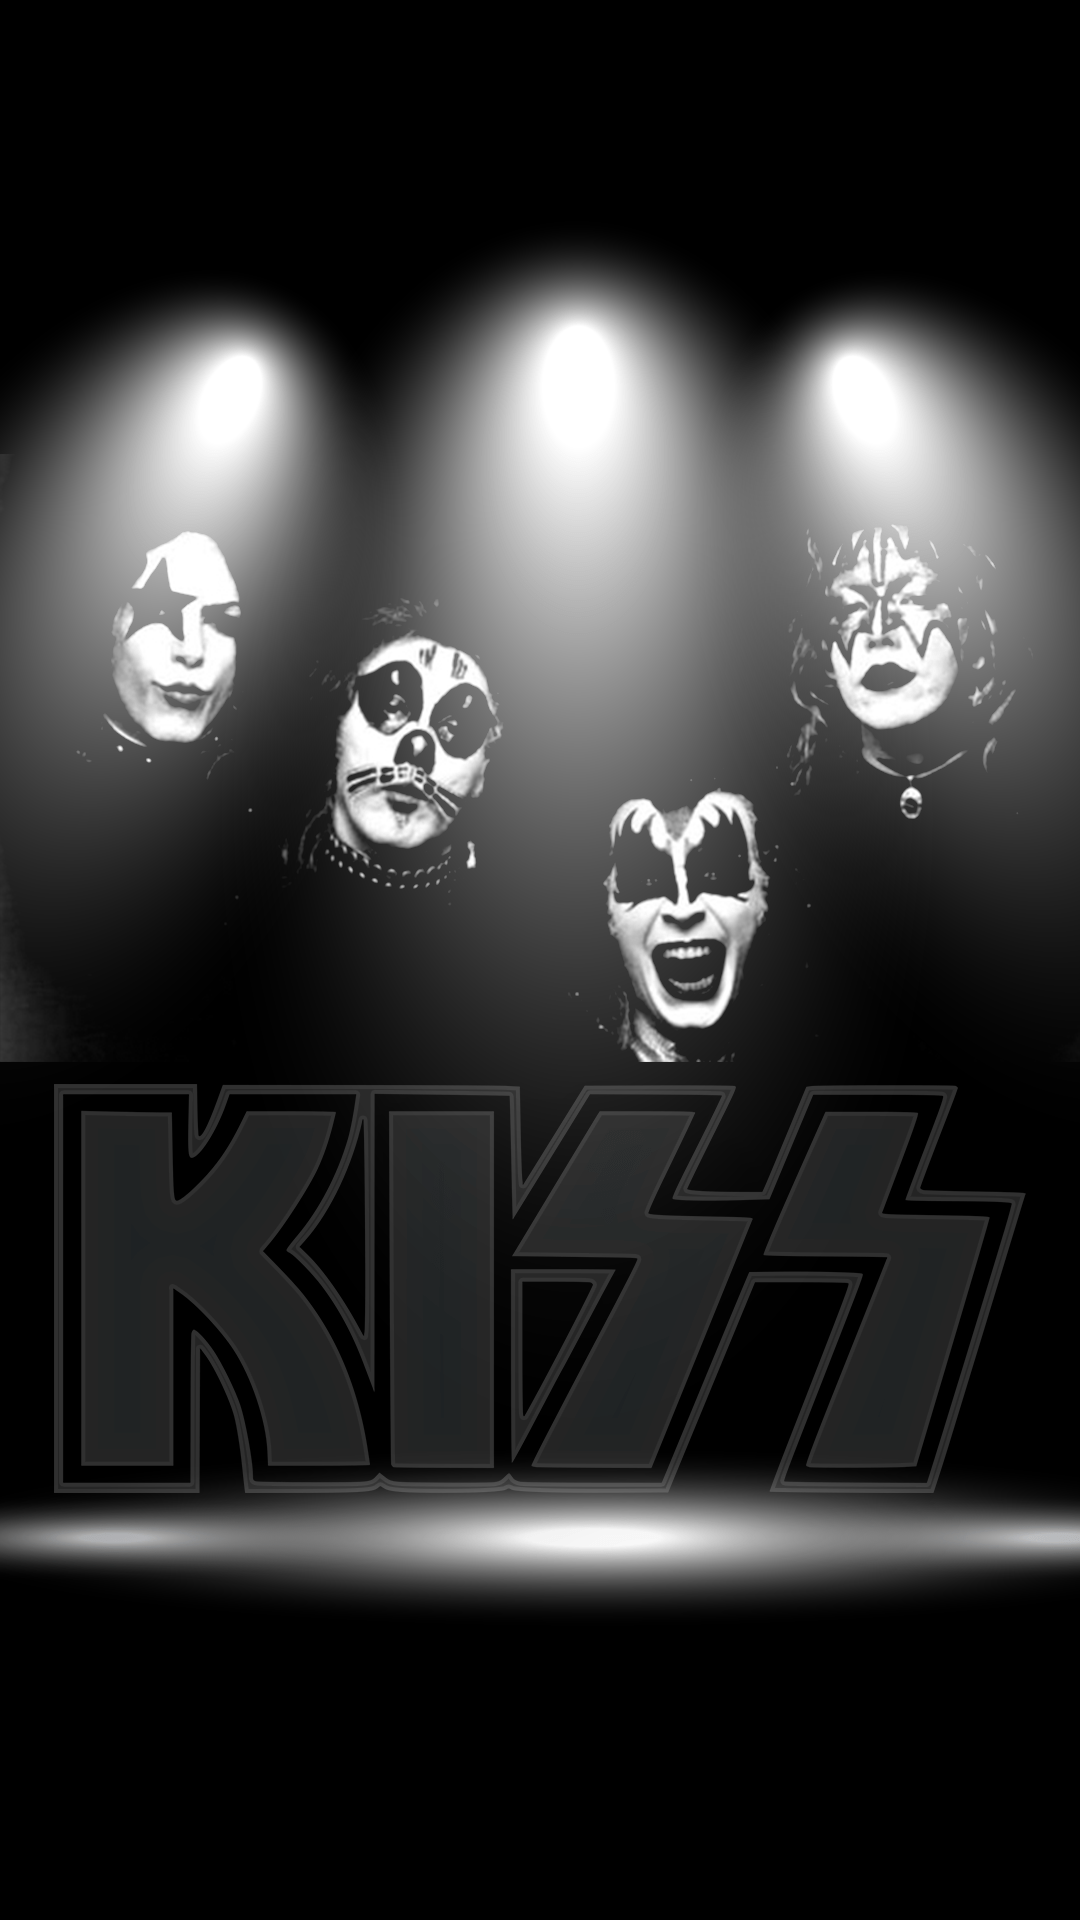 Super Hd Wallpapers Iphone X Download Our Hd Kiss Band Wallpaper For Android Phones 0150